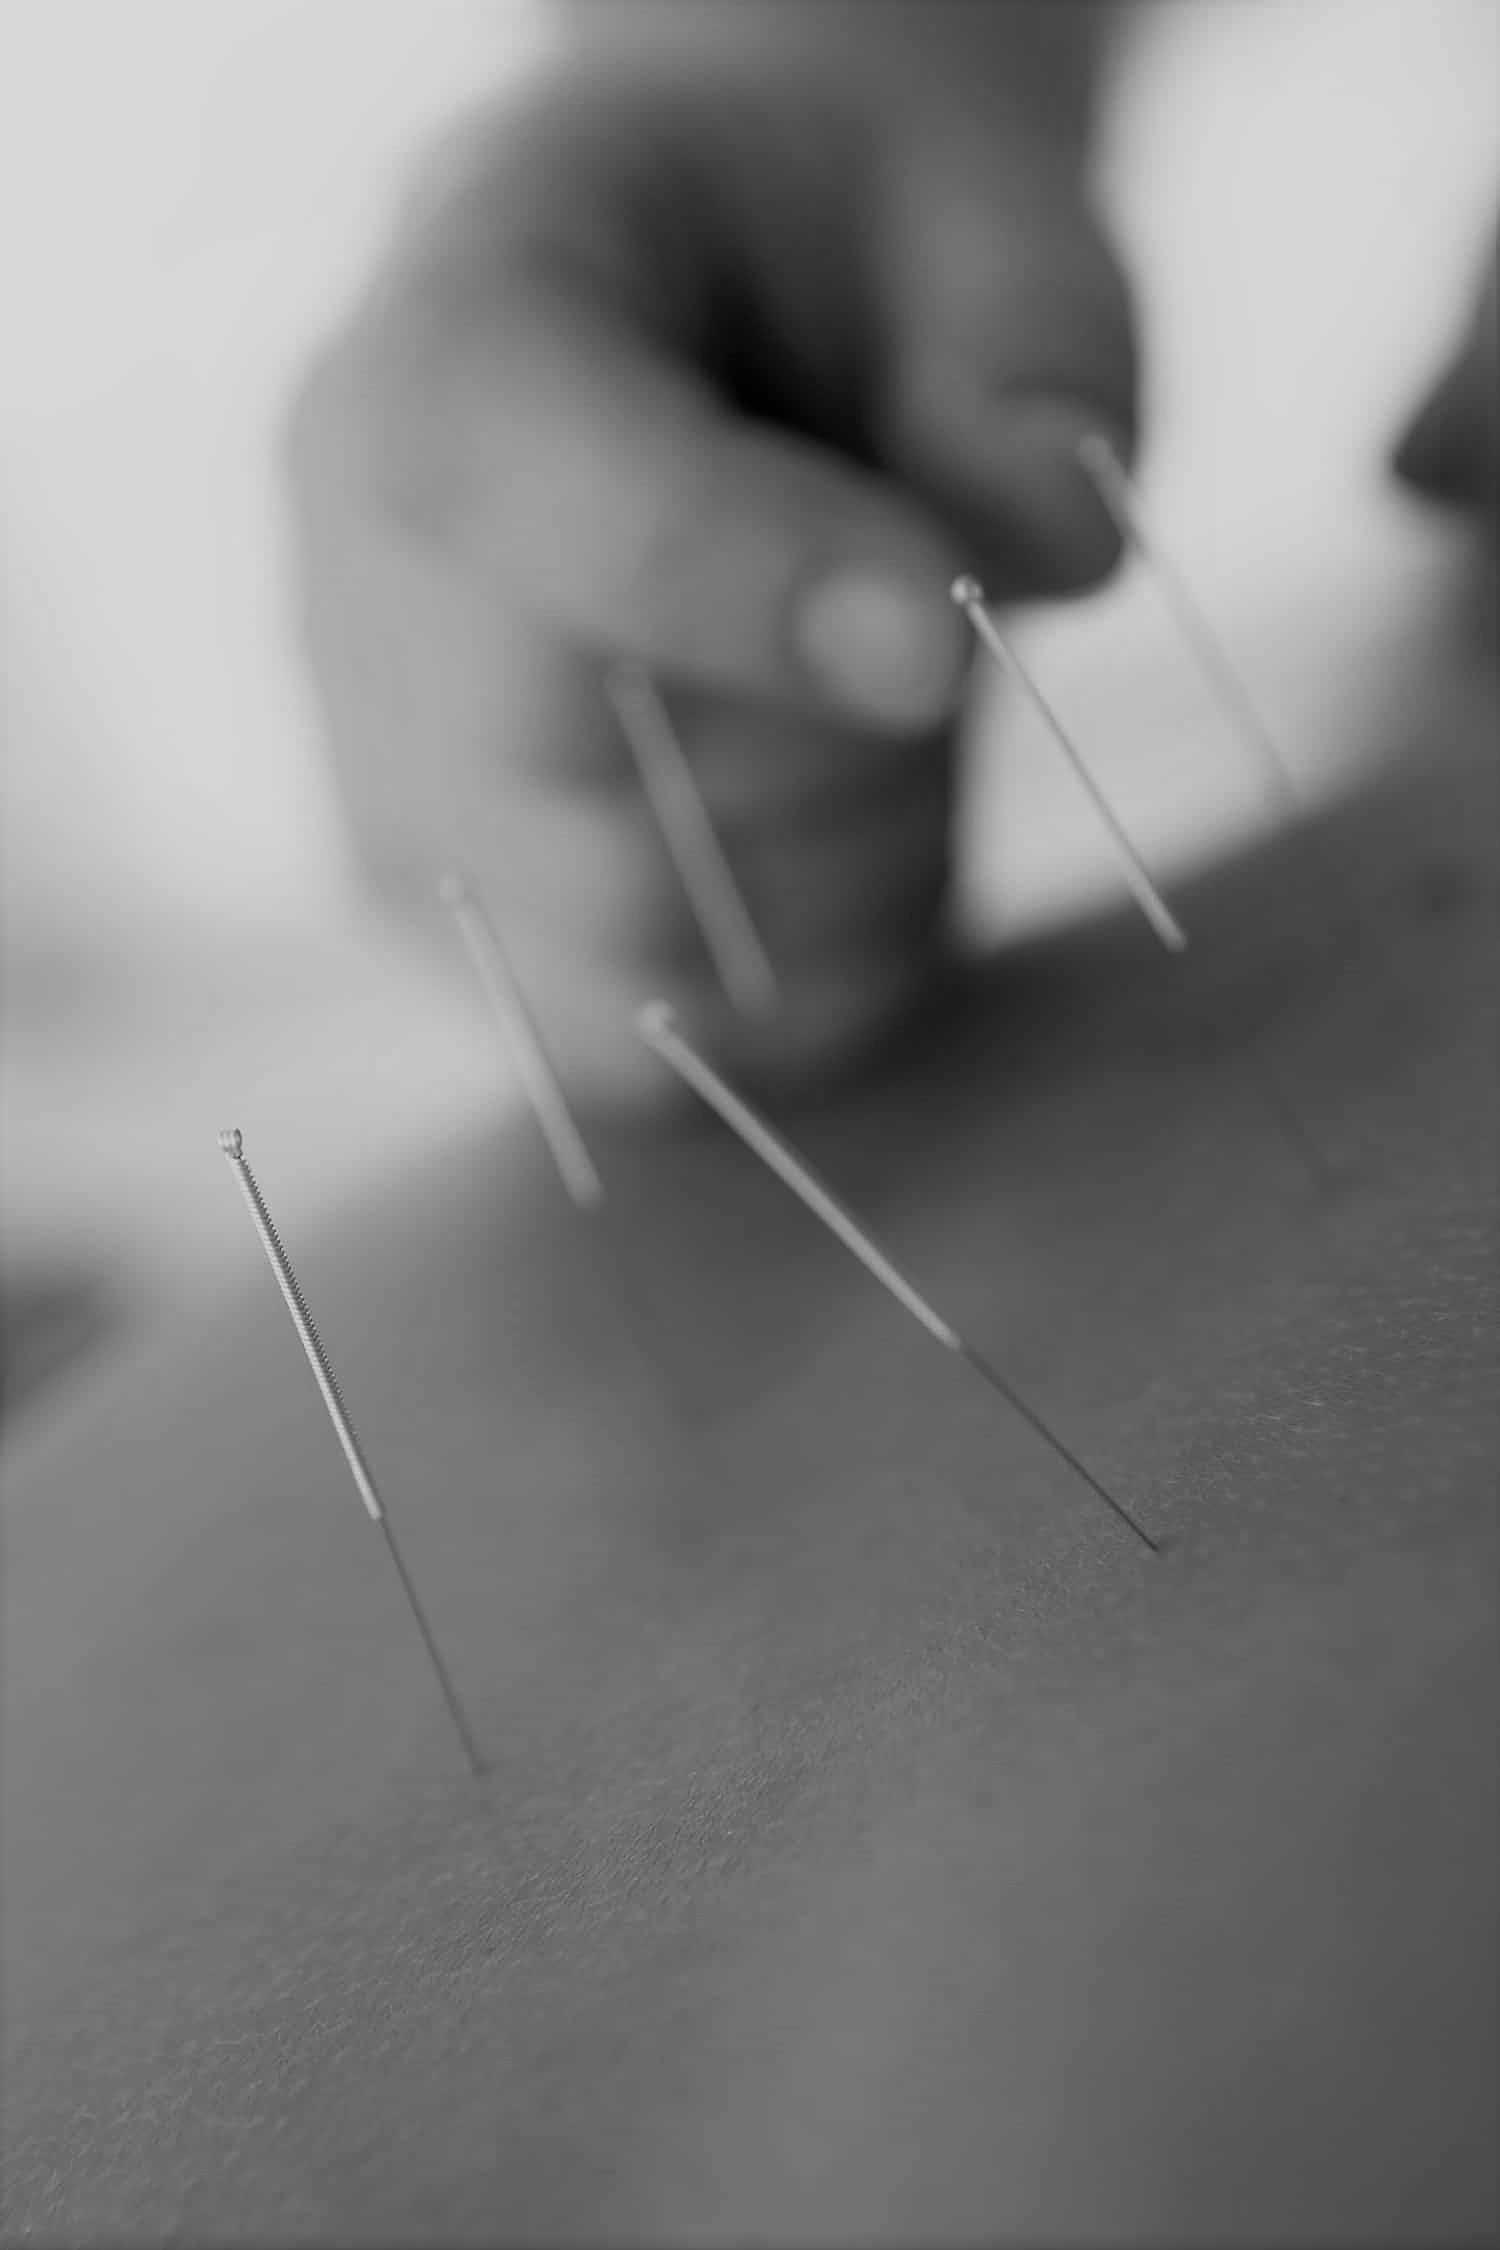 Simulateurs d'Acupuncture - Twin Medical